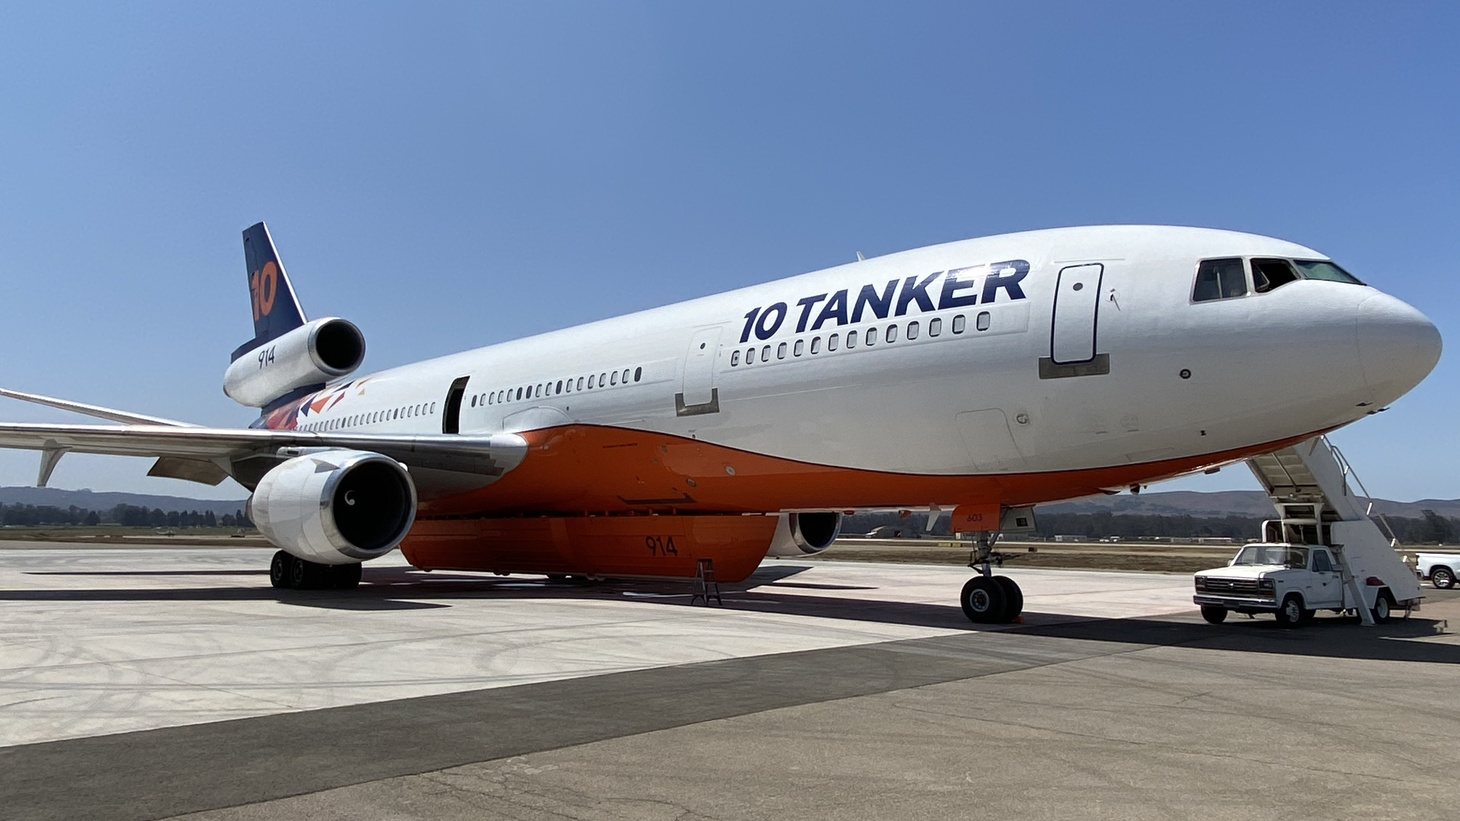 Tanker 914 is one of four DC-10 jets converted from passenger service to firefighting by the Albuquerque-based 10 Tanker. The company sends its planes around the globe to battle blazes, but they become a regular fixture in the Southern California skies for several months of the year. Each aircraft can carry 9,400 gallons of retardant.